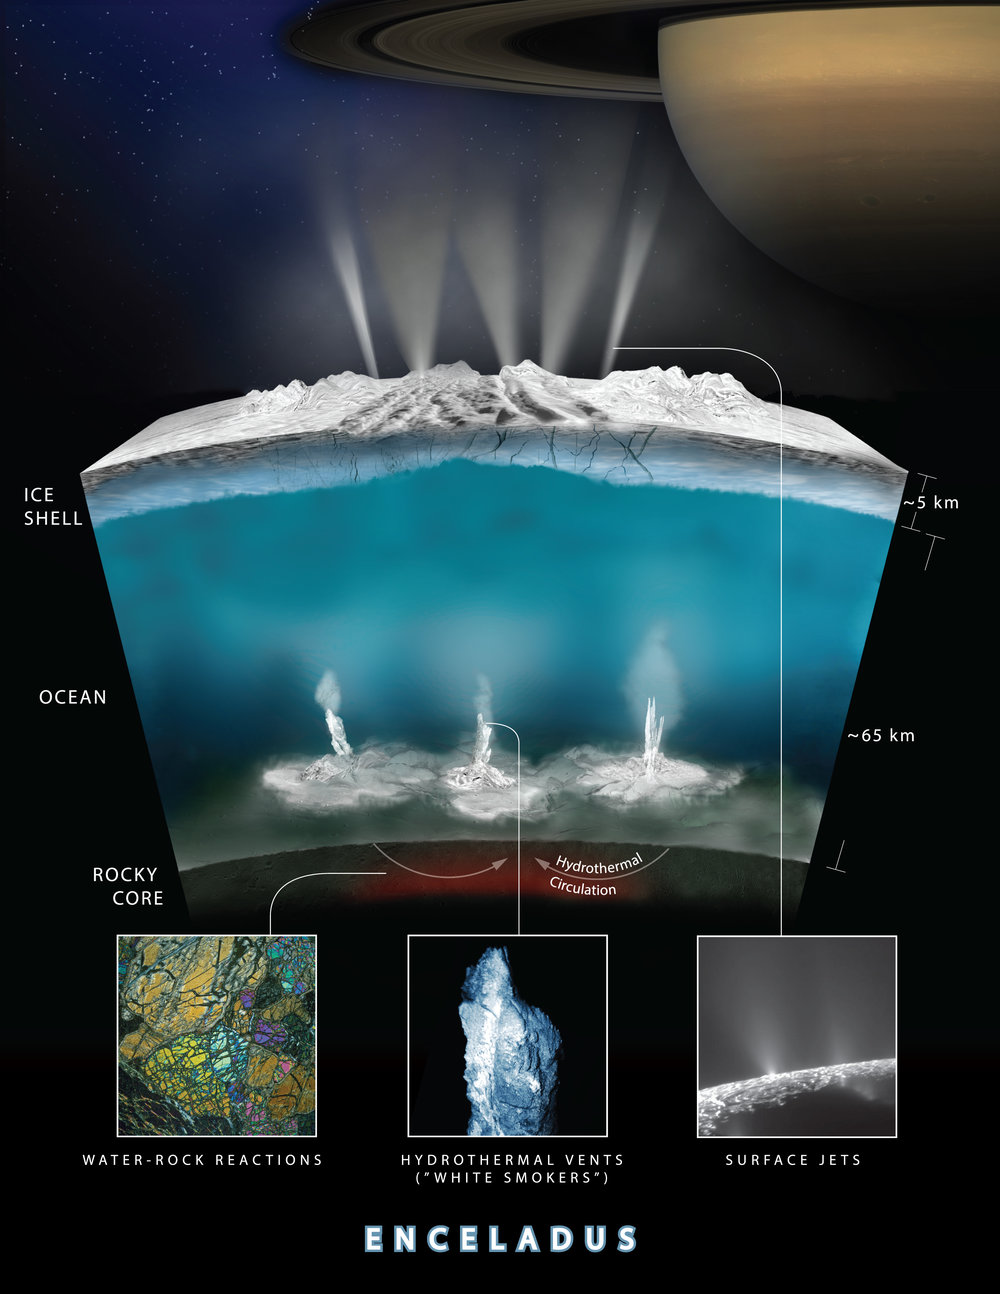 Artist rendering showing an interior cross-section of the crust of Enceladus, which shows how hydrothermal activity may be causing the plumes of water at the moon's surface. - Image Credit: NASA-GSFC/SVS, NASA/JPL-Caltech/Southwest Research Institute  (click to enlarge)